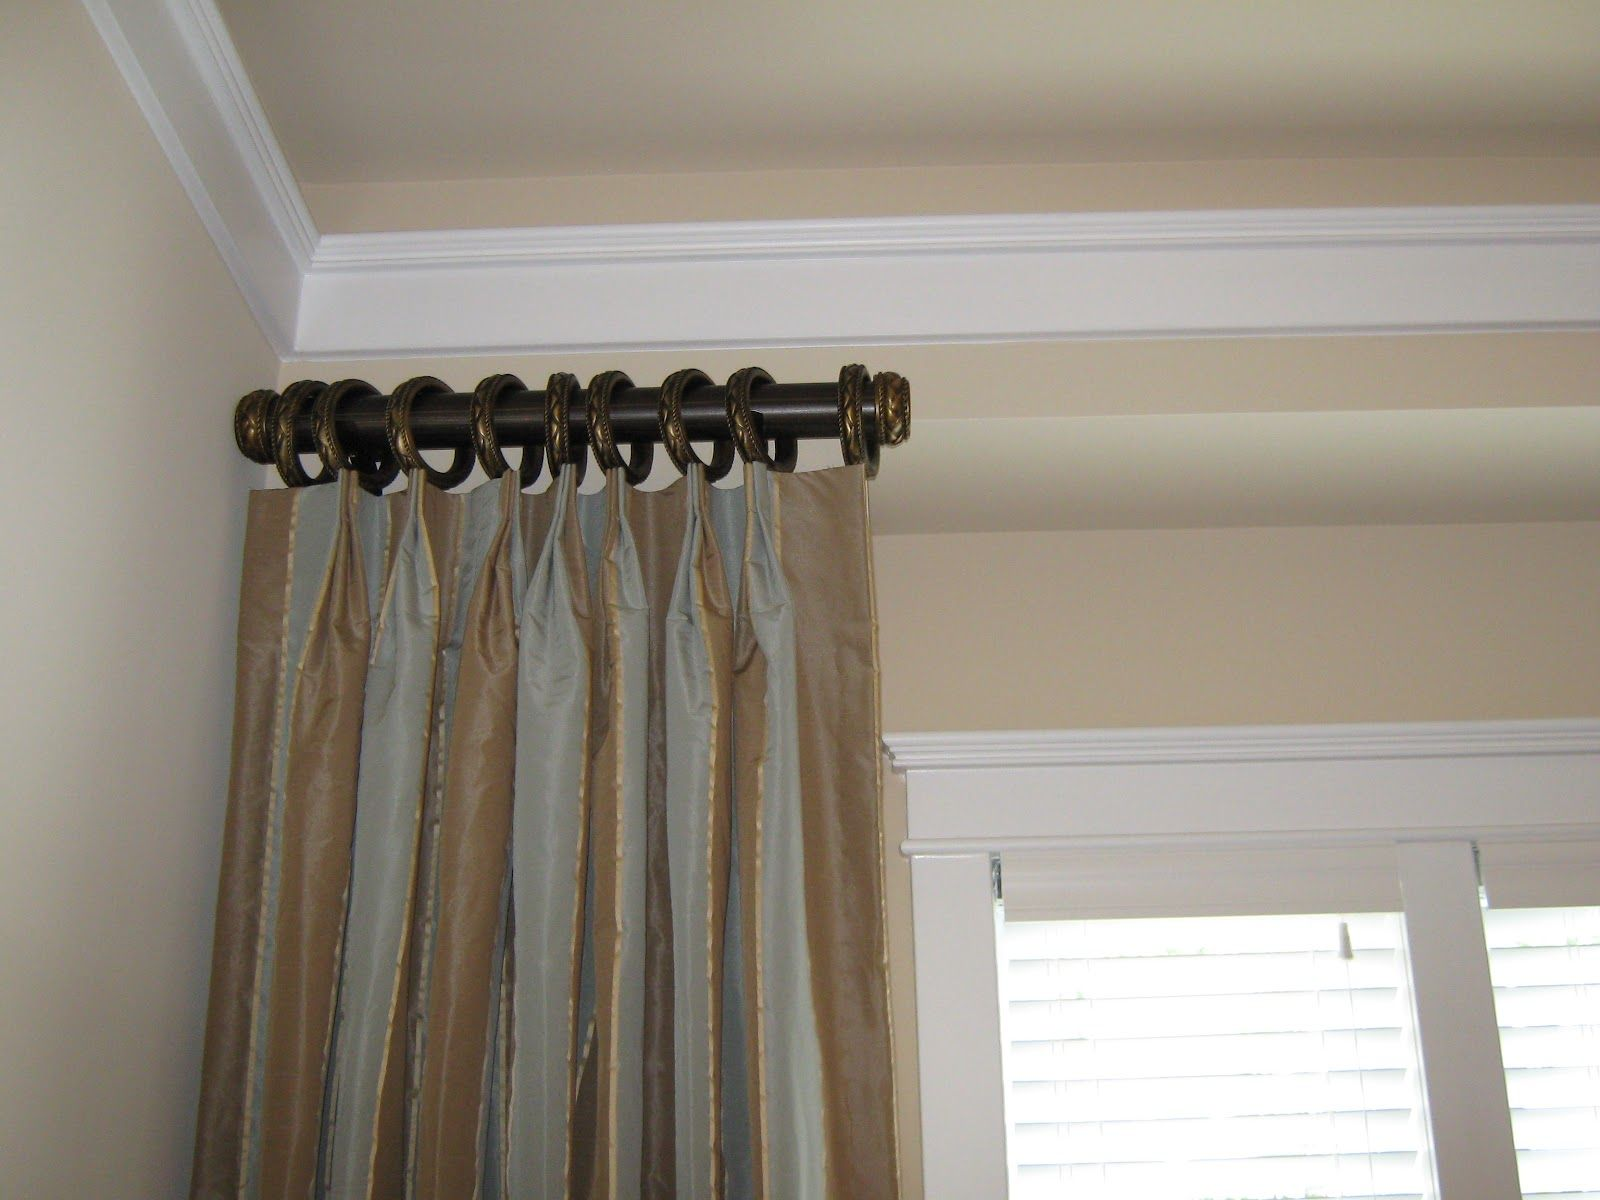 Decorative side panel curtain rod panels is a Short curtain rods